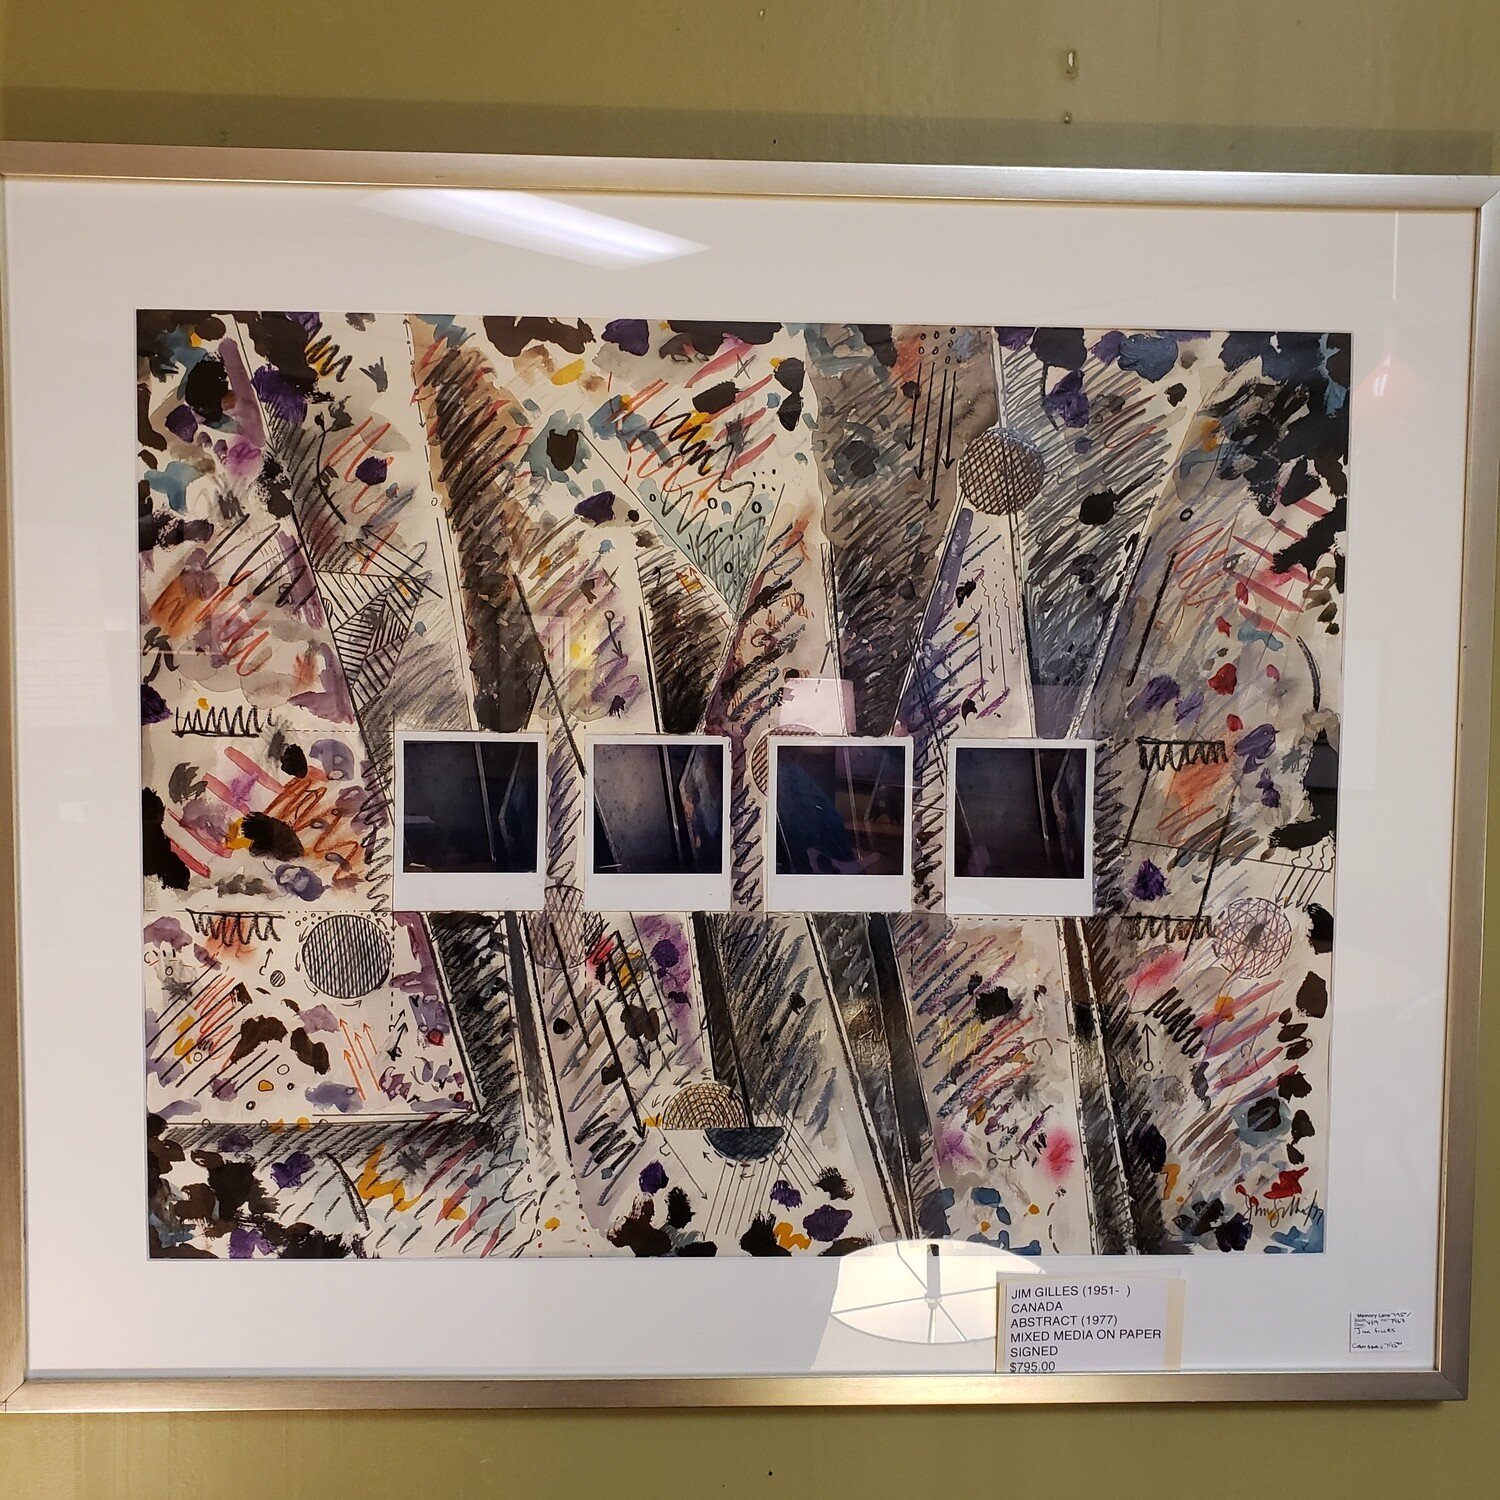 Jim Gilles - Abstract Mixed Media on Paper signed